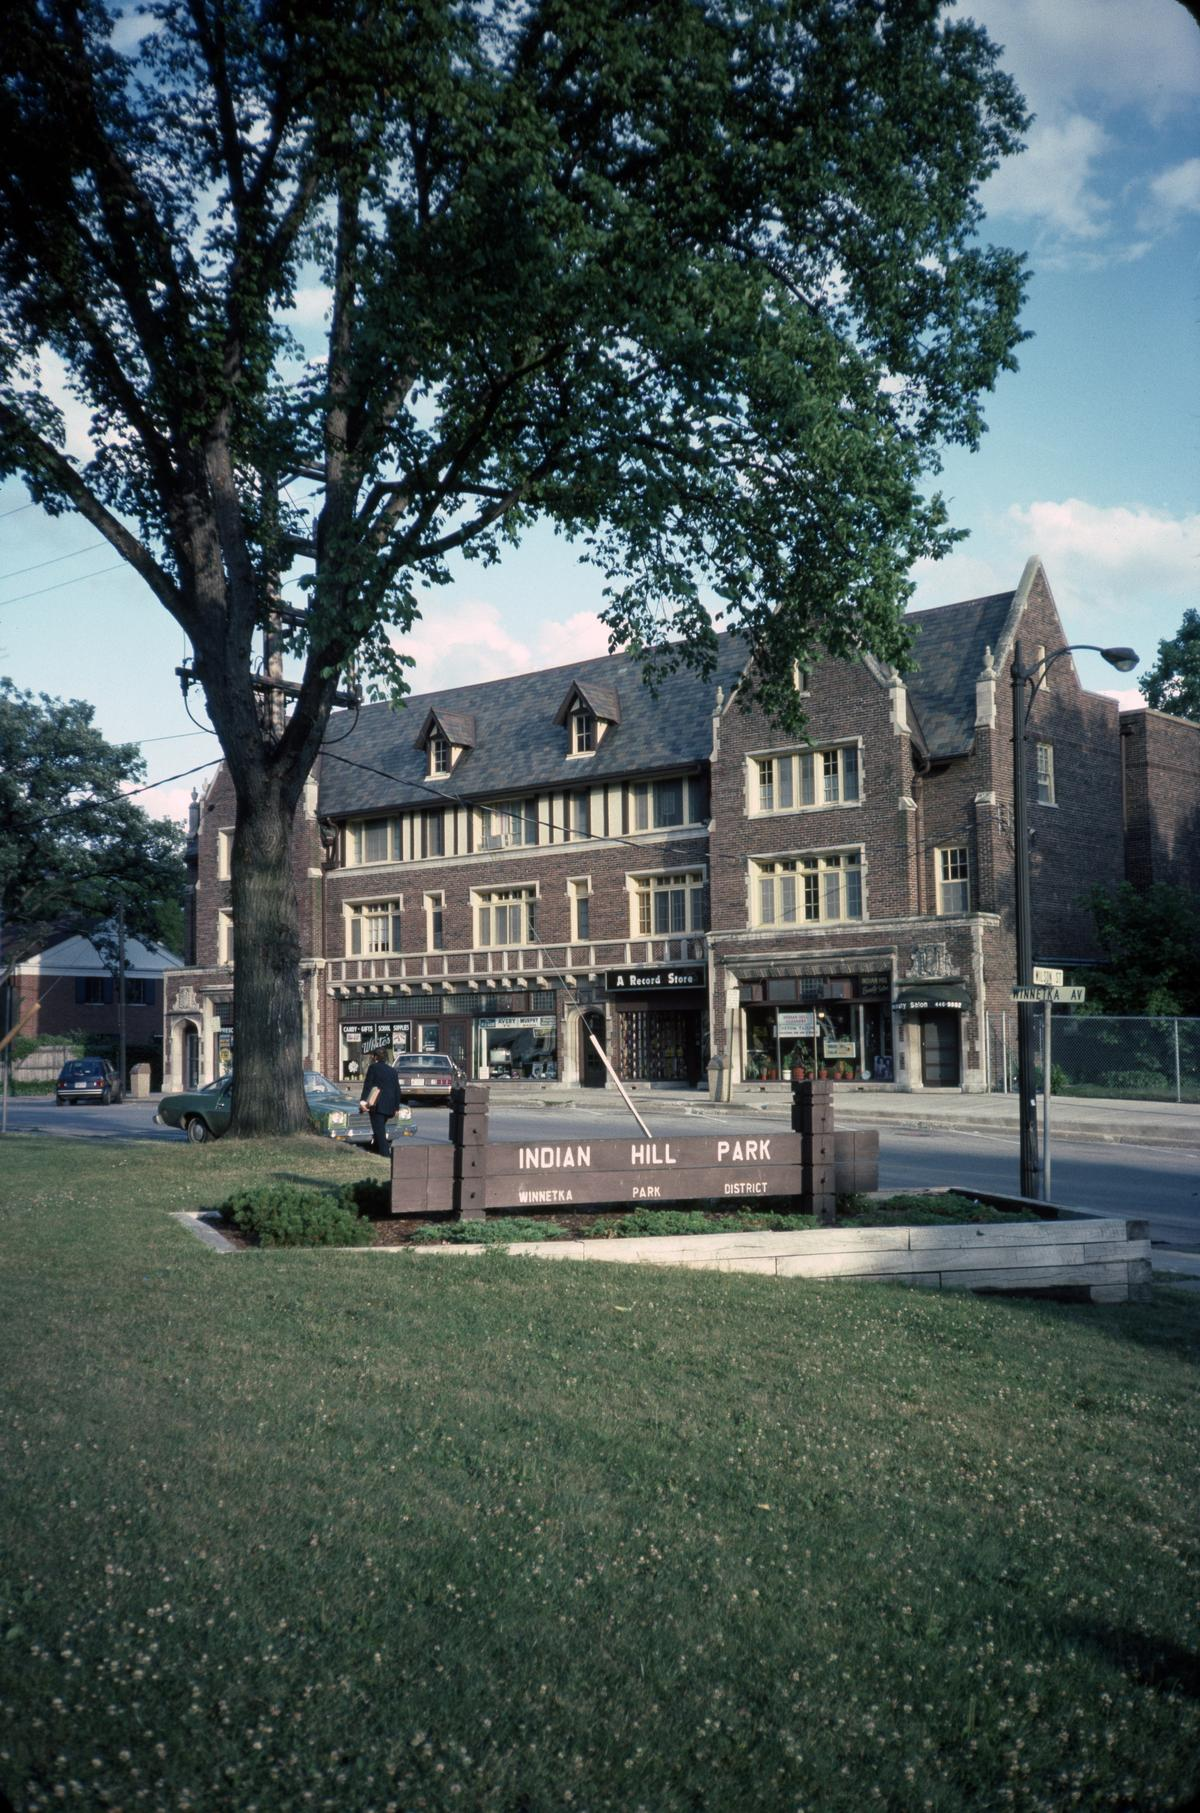 Apartments and shops, Winnetka Avenue and Wilson Street, Winnetka